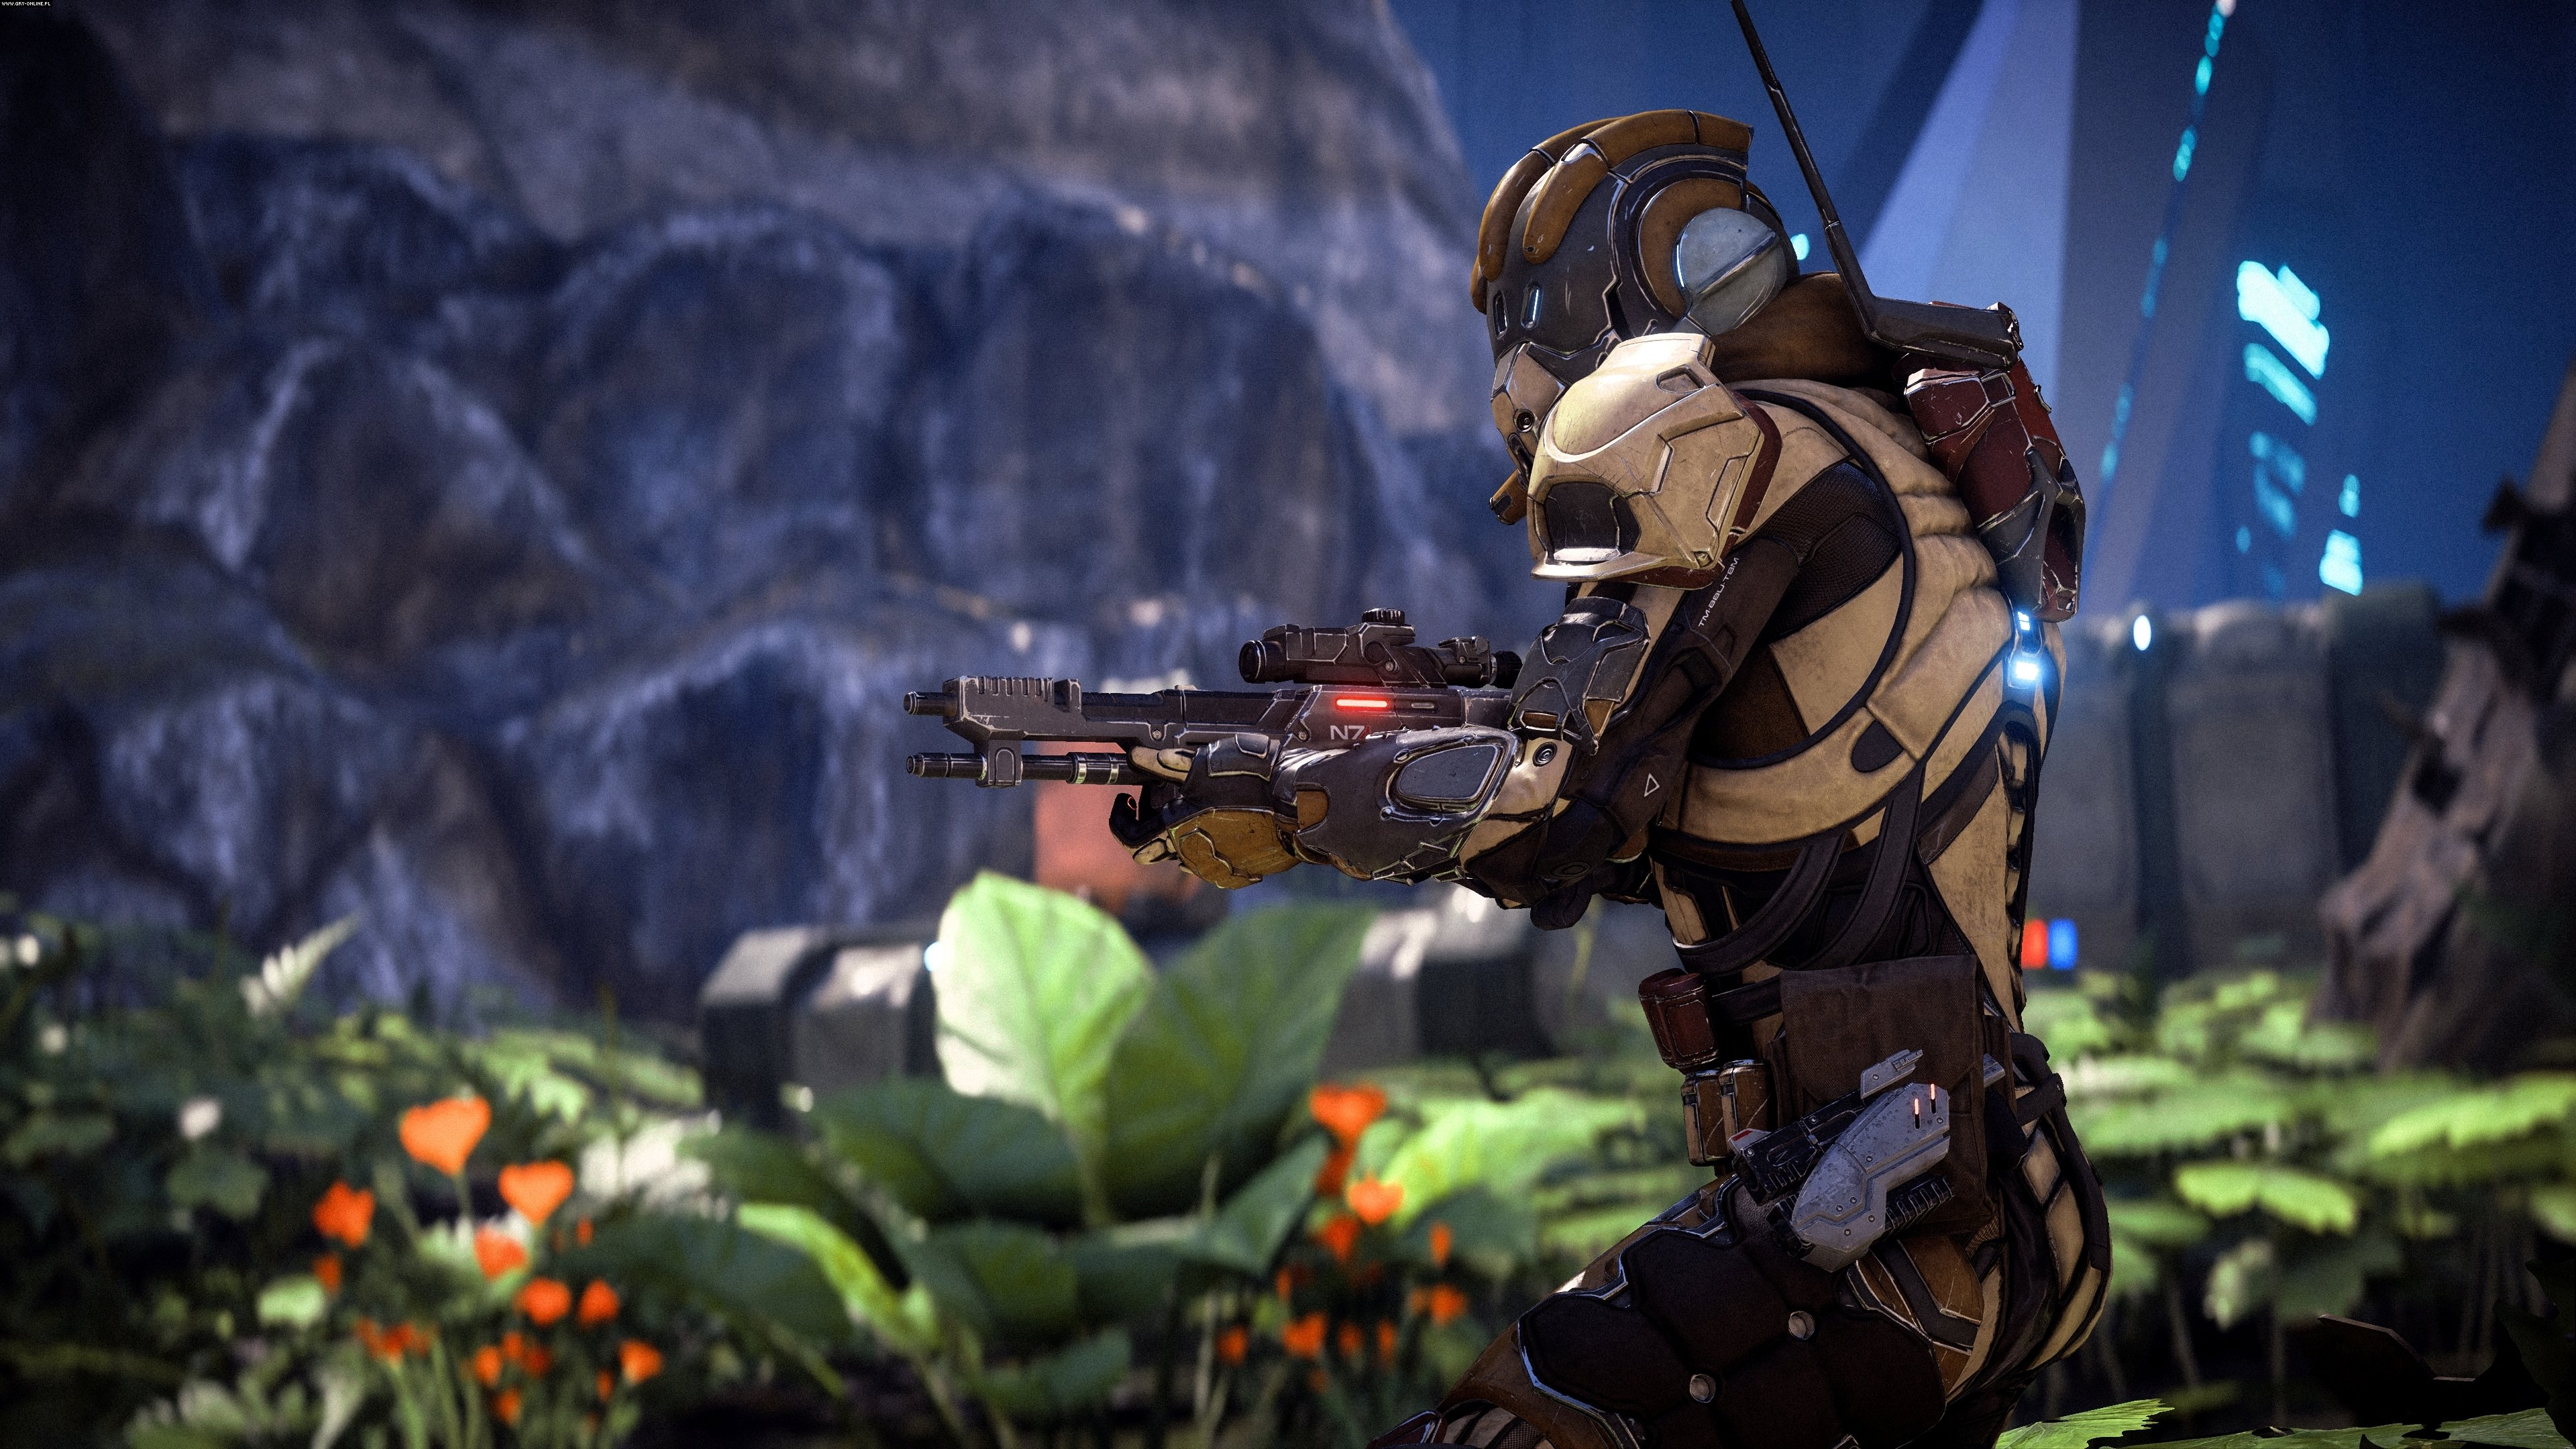 Mass Effect: Andromeda PC, PS4 Games Image 8/140, BioWare Corporation, Electronic Arts Inc.